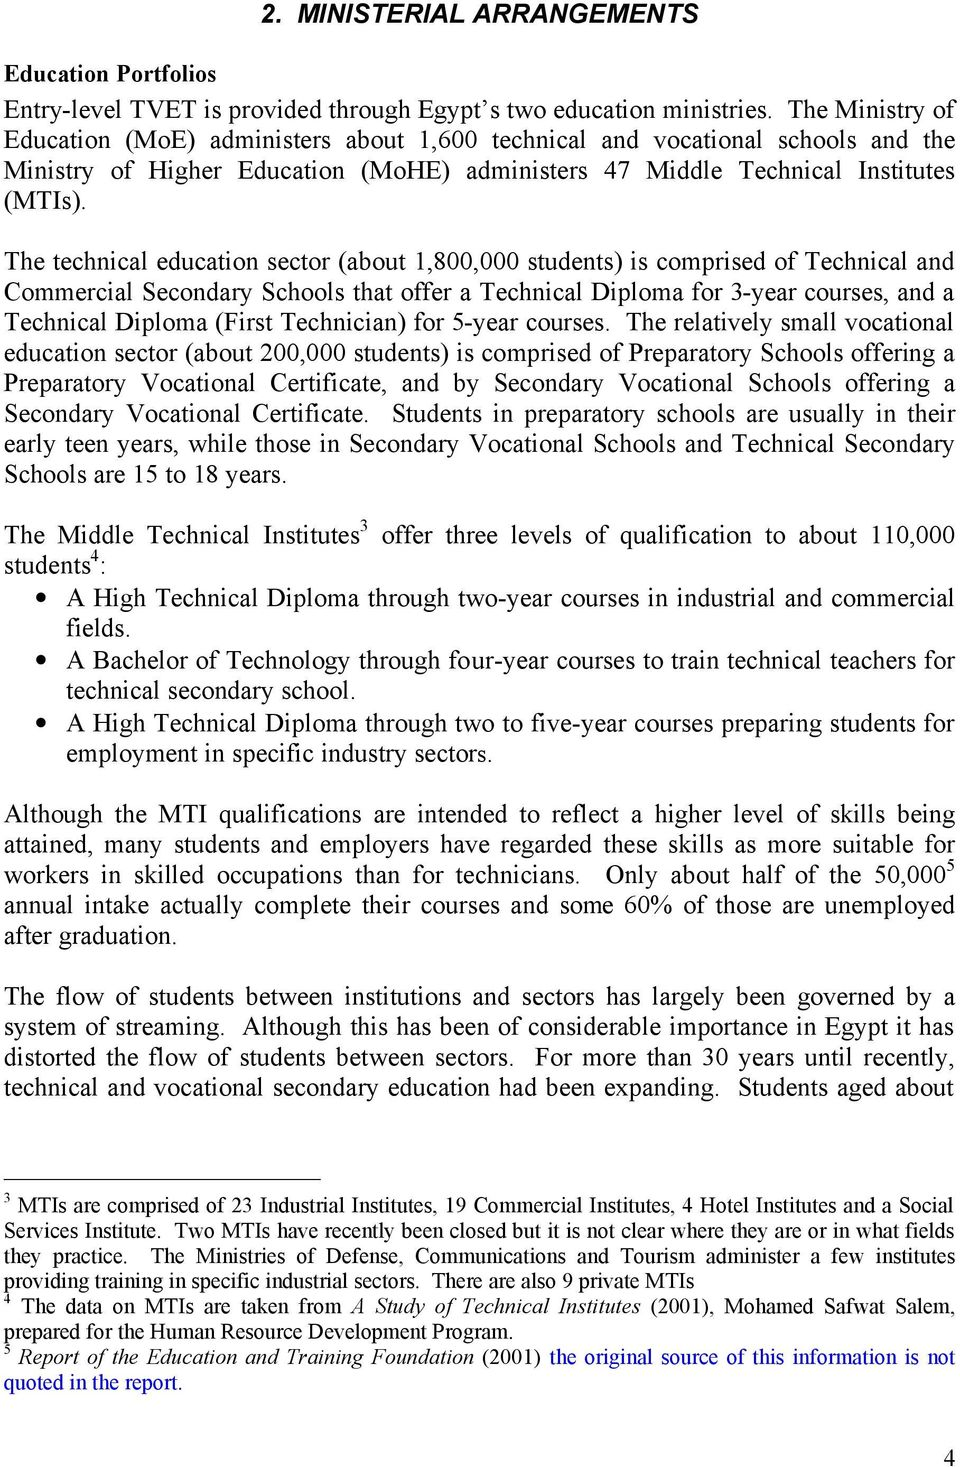 The technical education sector (about 1,800,000 students) is comprised of Technical and Commercial Secondary Schools that offer a Technical Diploma for 3-year courses, and a Technical Diploma (First